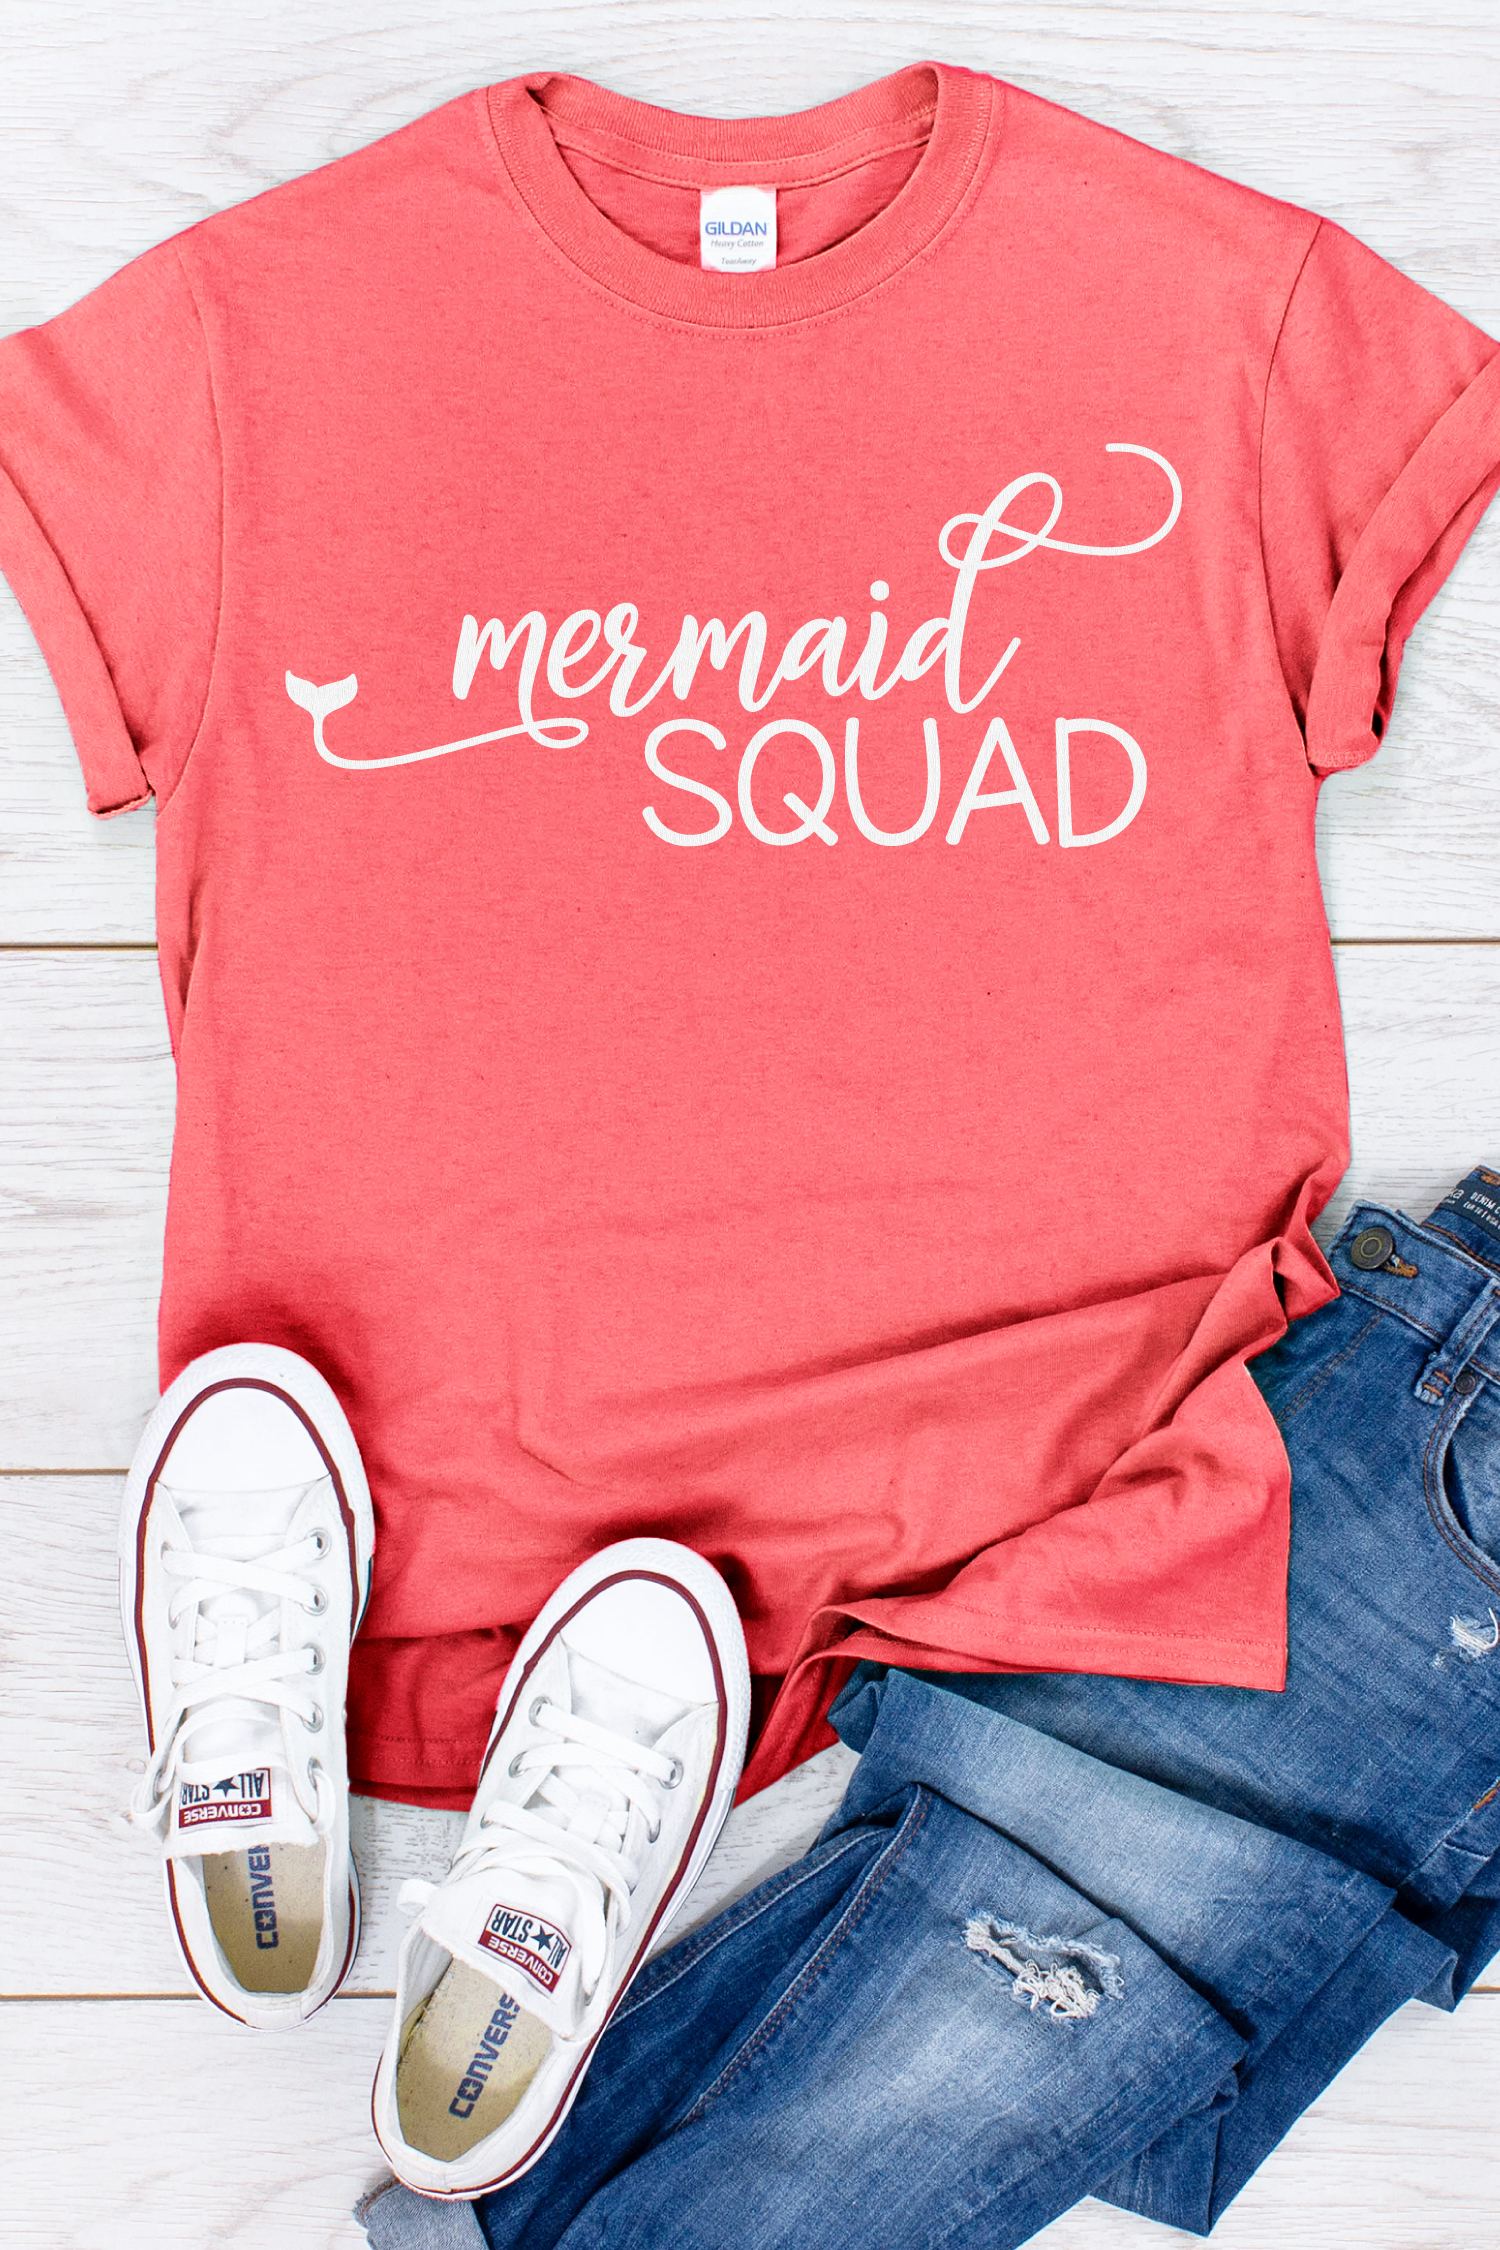 Why be a princess when you can be a mermaid? This Mermaid SVG Bundle will help you unleash your magical ocean vibes, just in time for summer.